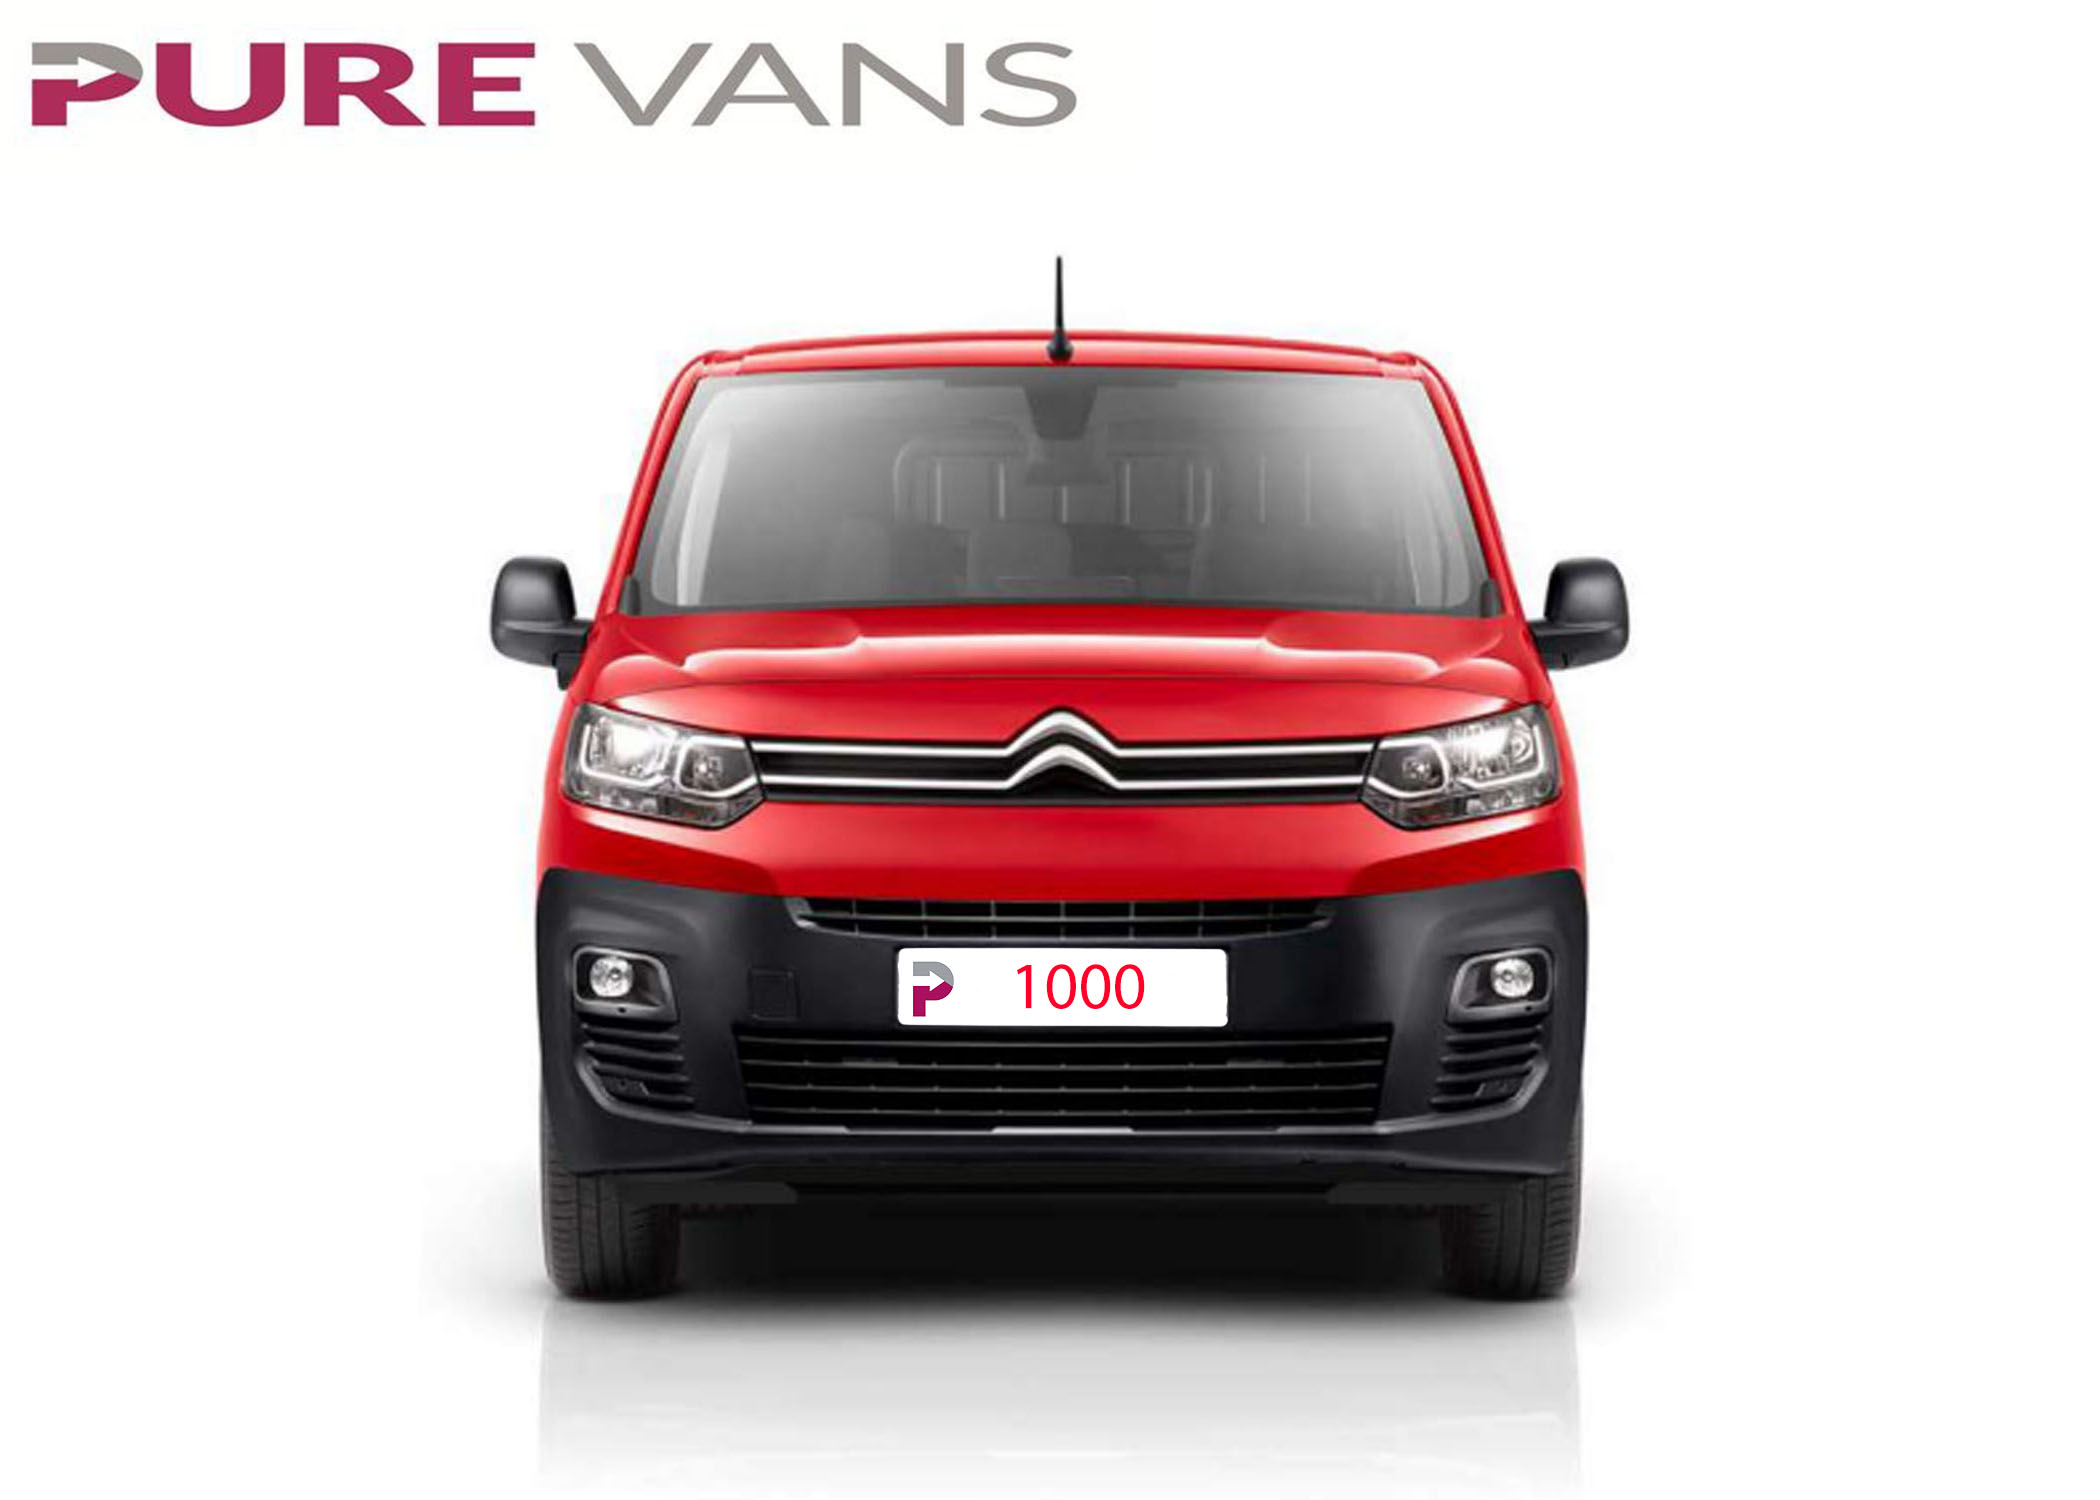 NEW MODEL CITROEN BERLINGO 1000 BHDI 75PS ENTERPRISE front view.jpg